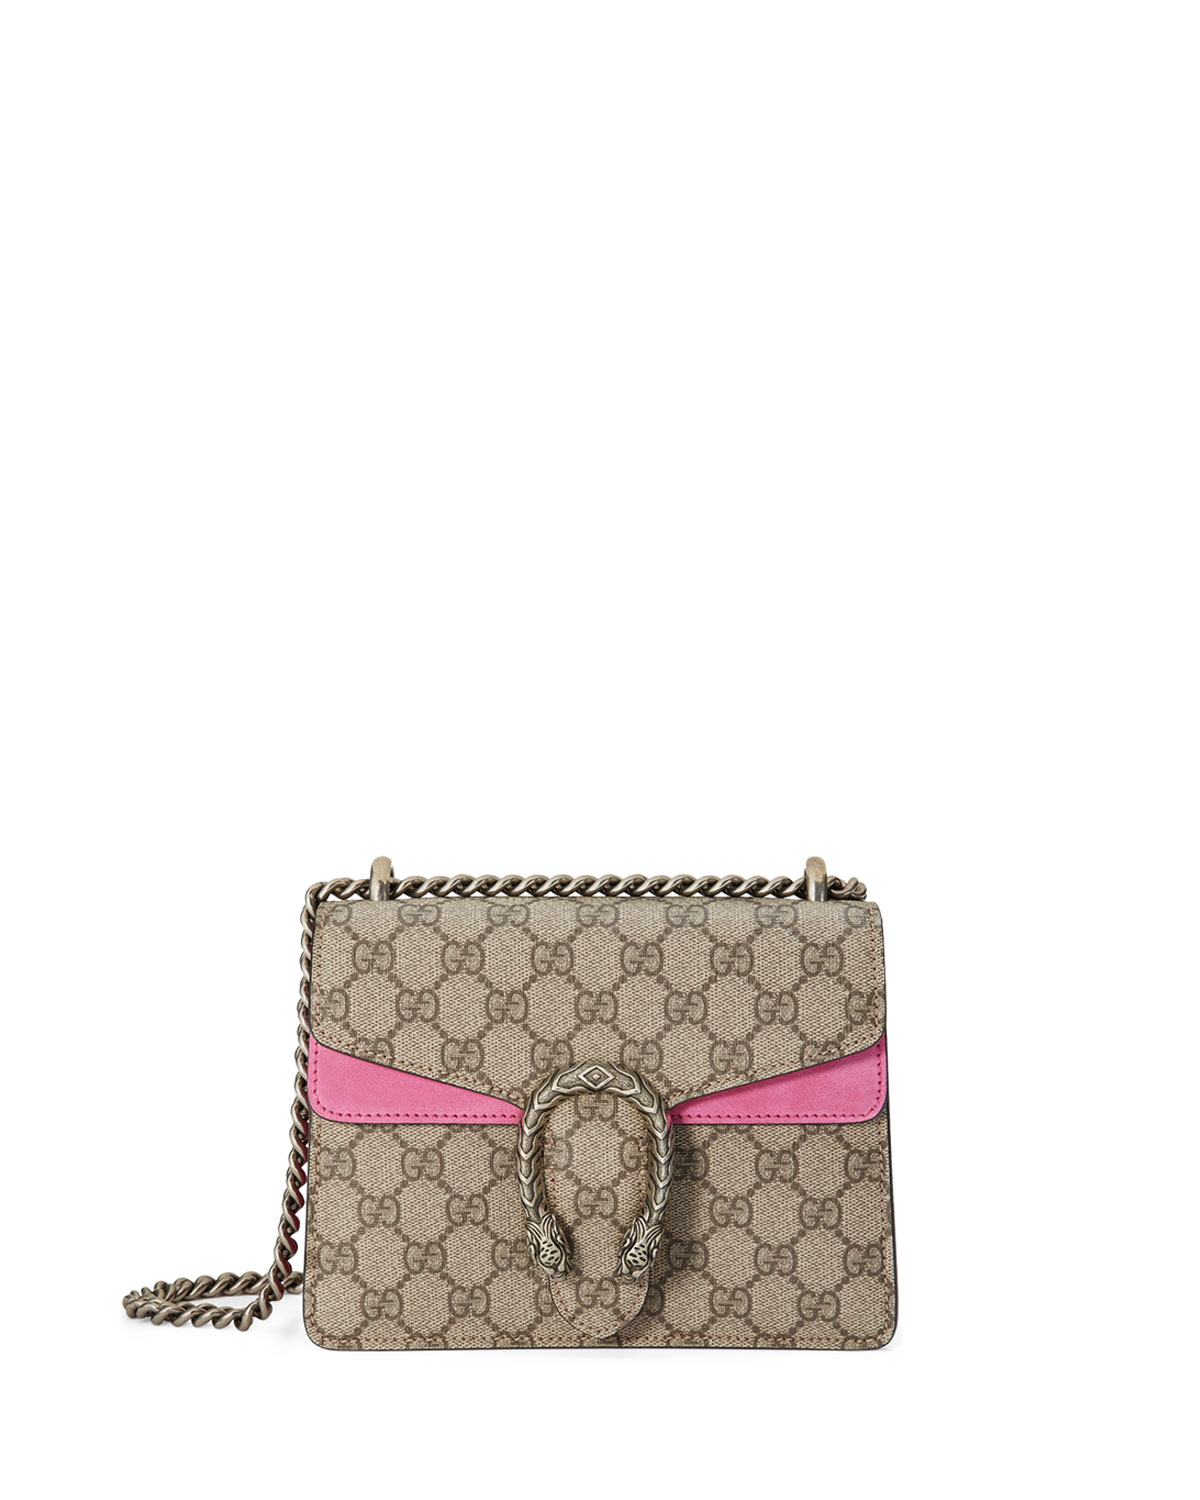 ee668bc275f0 Gucci Dionysus GG Supreme Mini Shoulder Bag, Beige/Bright Pink ...